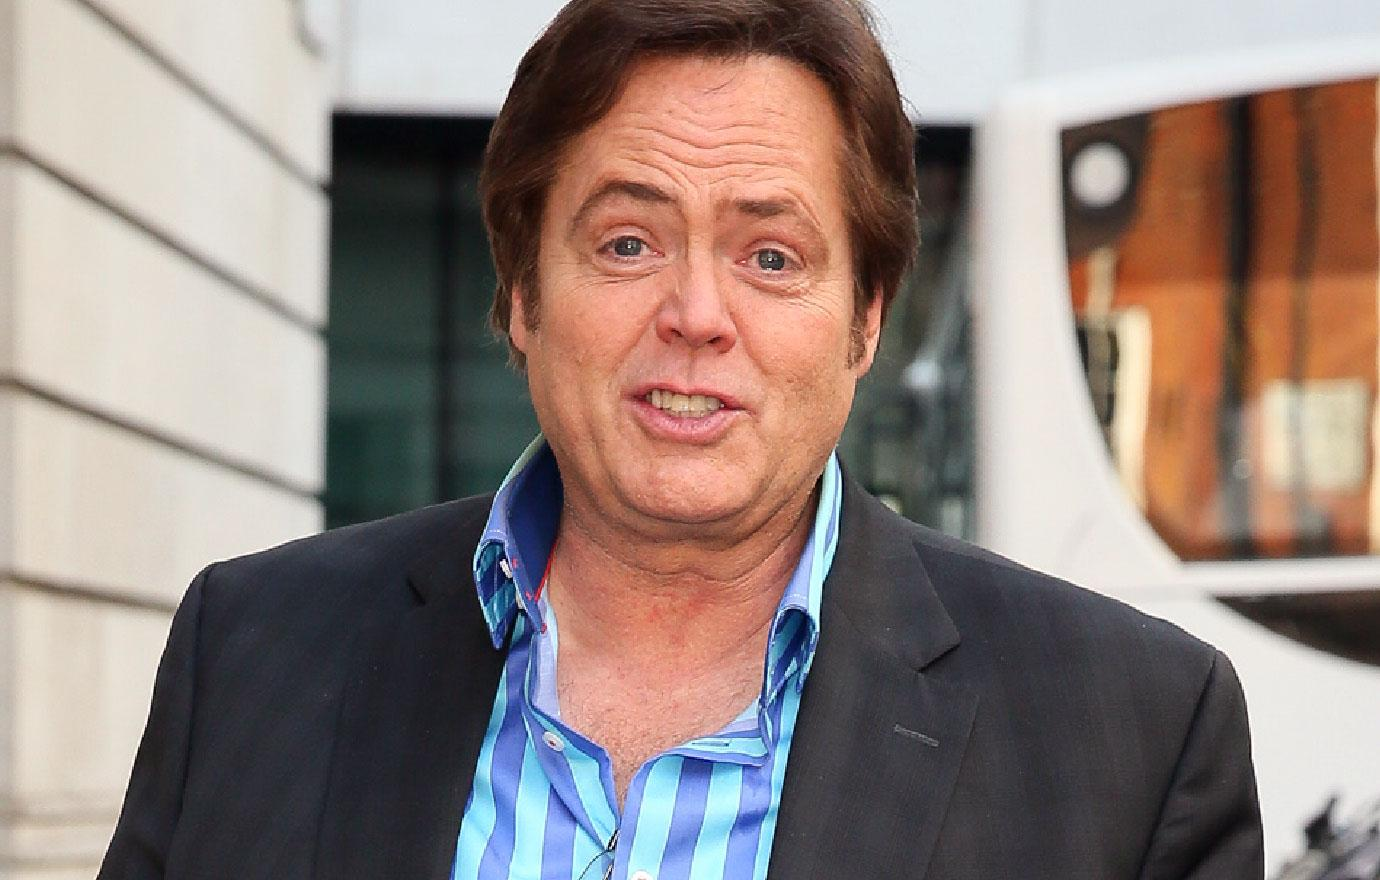 Jimmy Osmond Spoke About Grueling Career Before Stroke